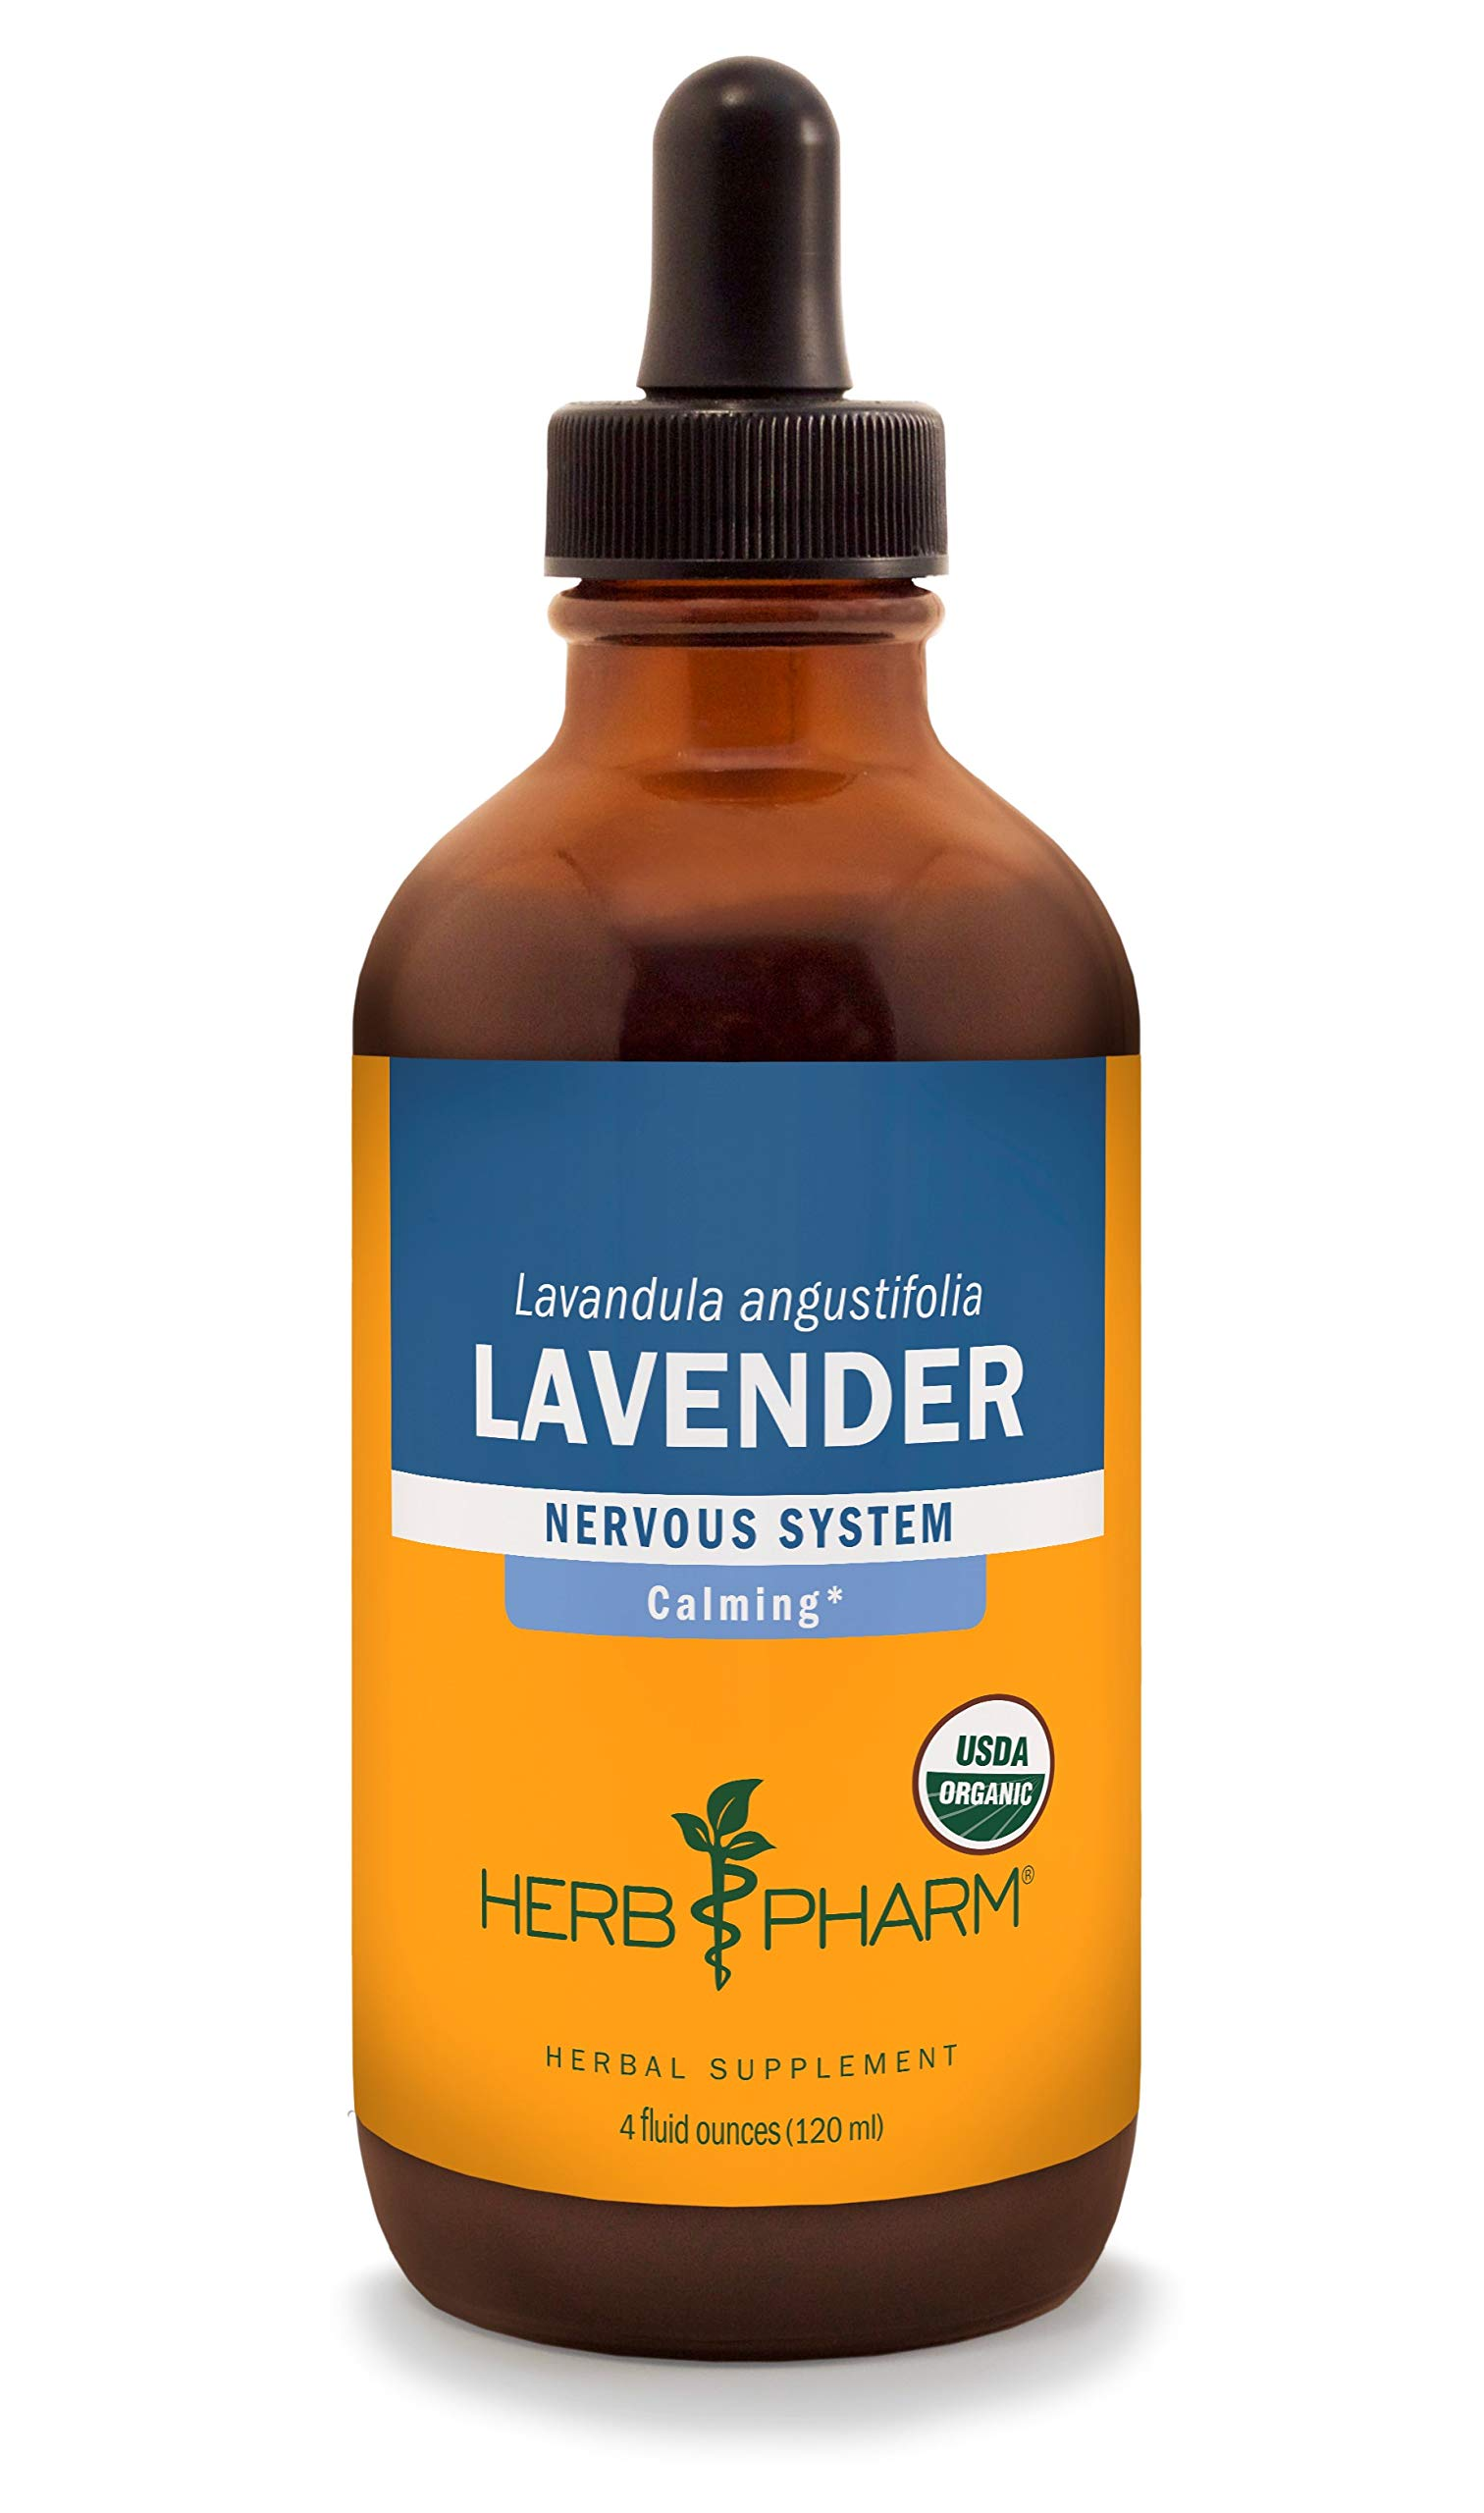 Herb Pharm Certified Organic Lavender Flower Liquid Extract for Calming Nervous System Support - 4 Ounce by Herb Pharm (Image #1)